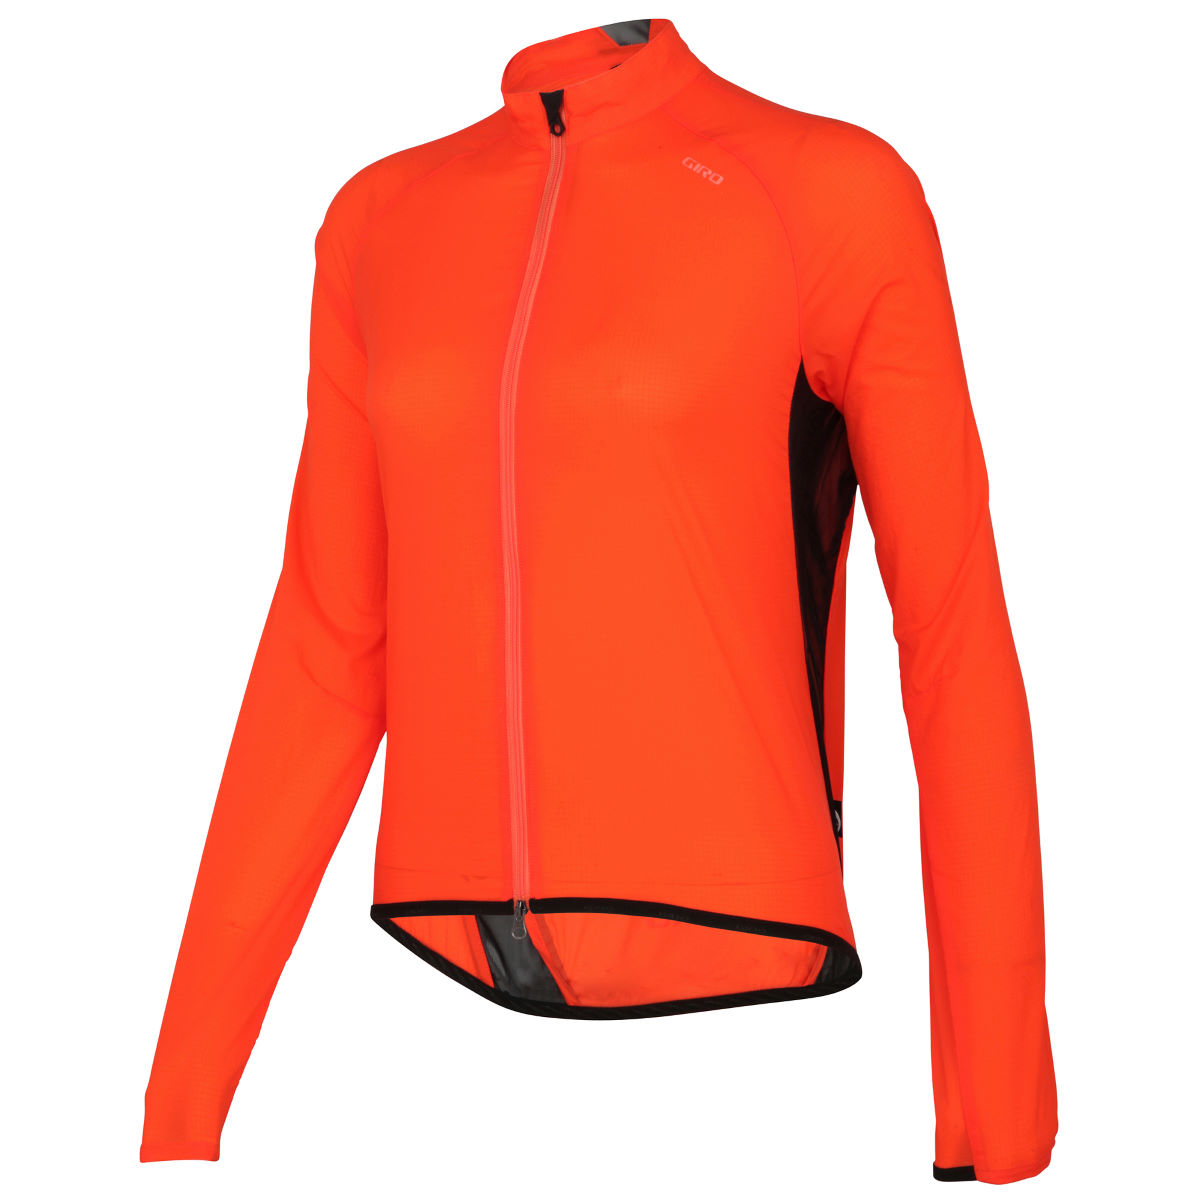 Veste Femme Giro Chrono Wind - XS Orange Coupe-vents vélo